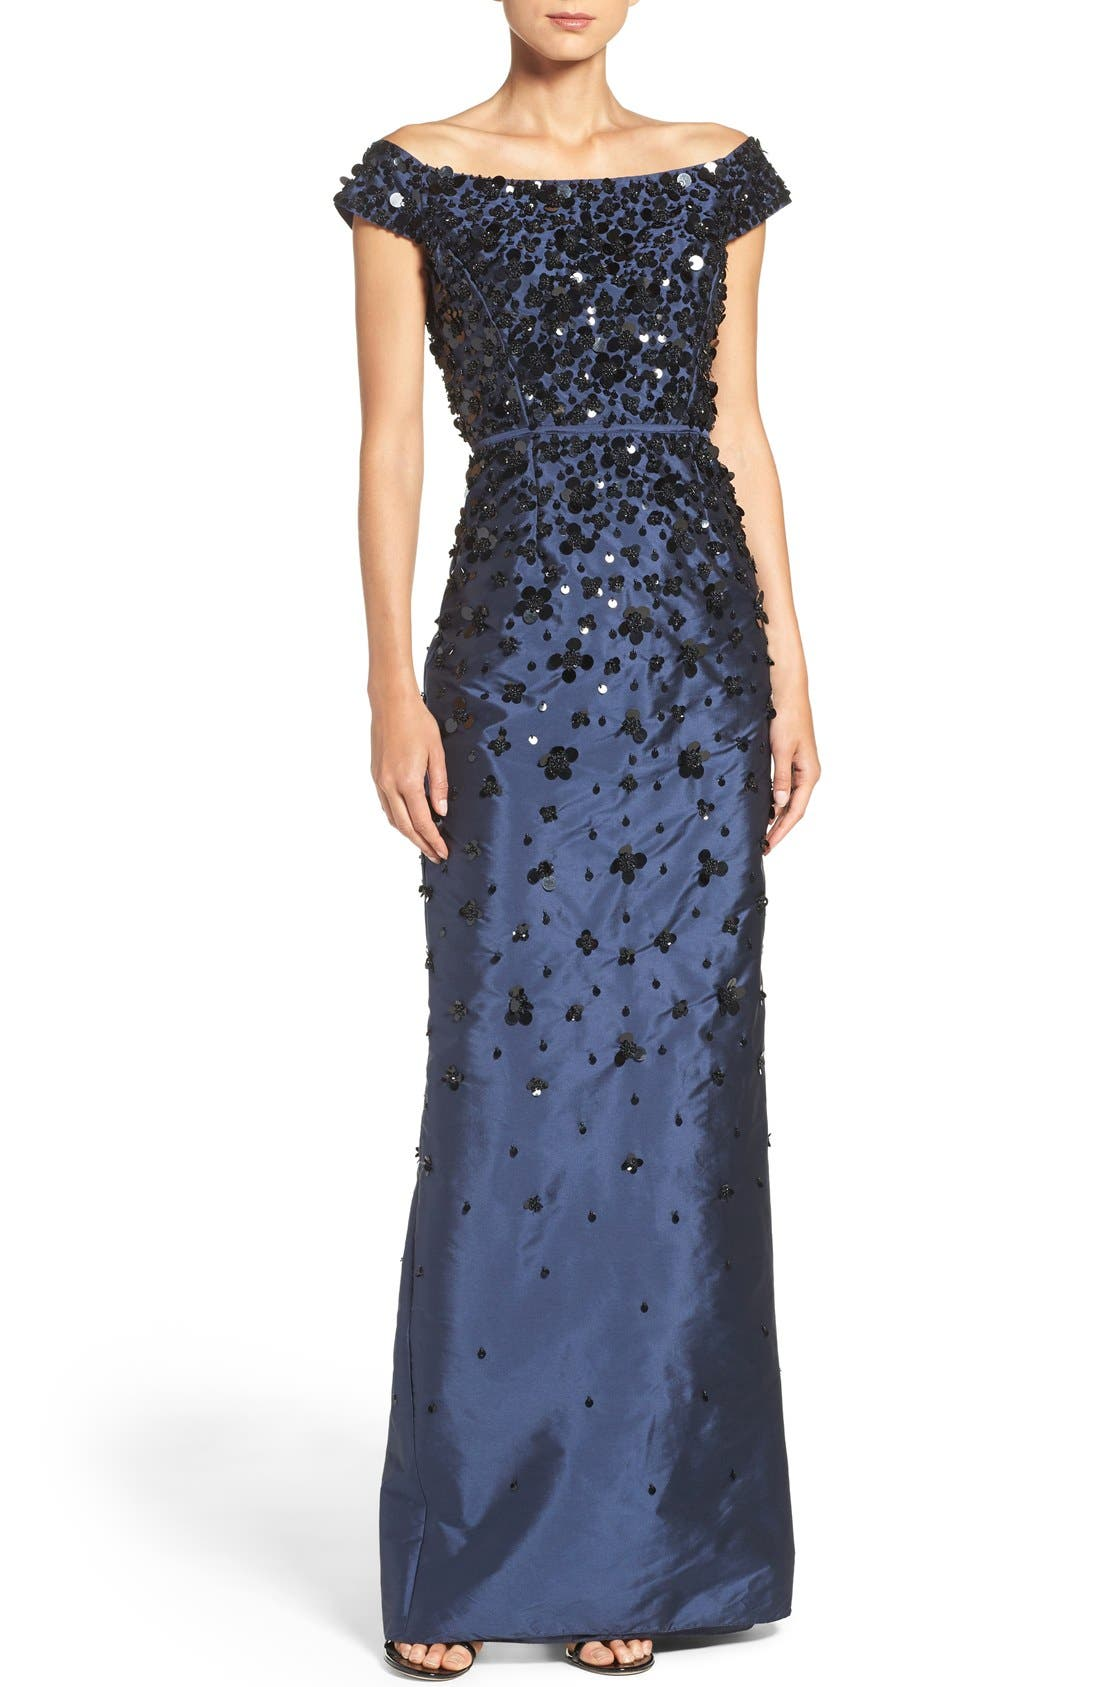 Alternate Image 1 Selected - Adrianna Papell Embellished Off the Shoulder Taffeta Gown